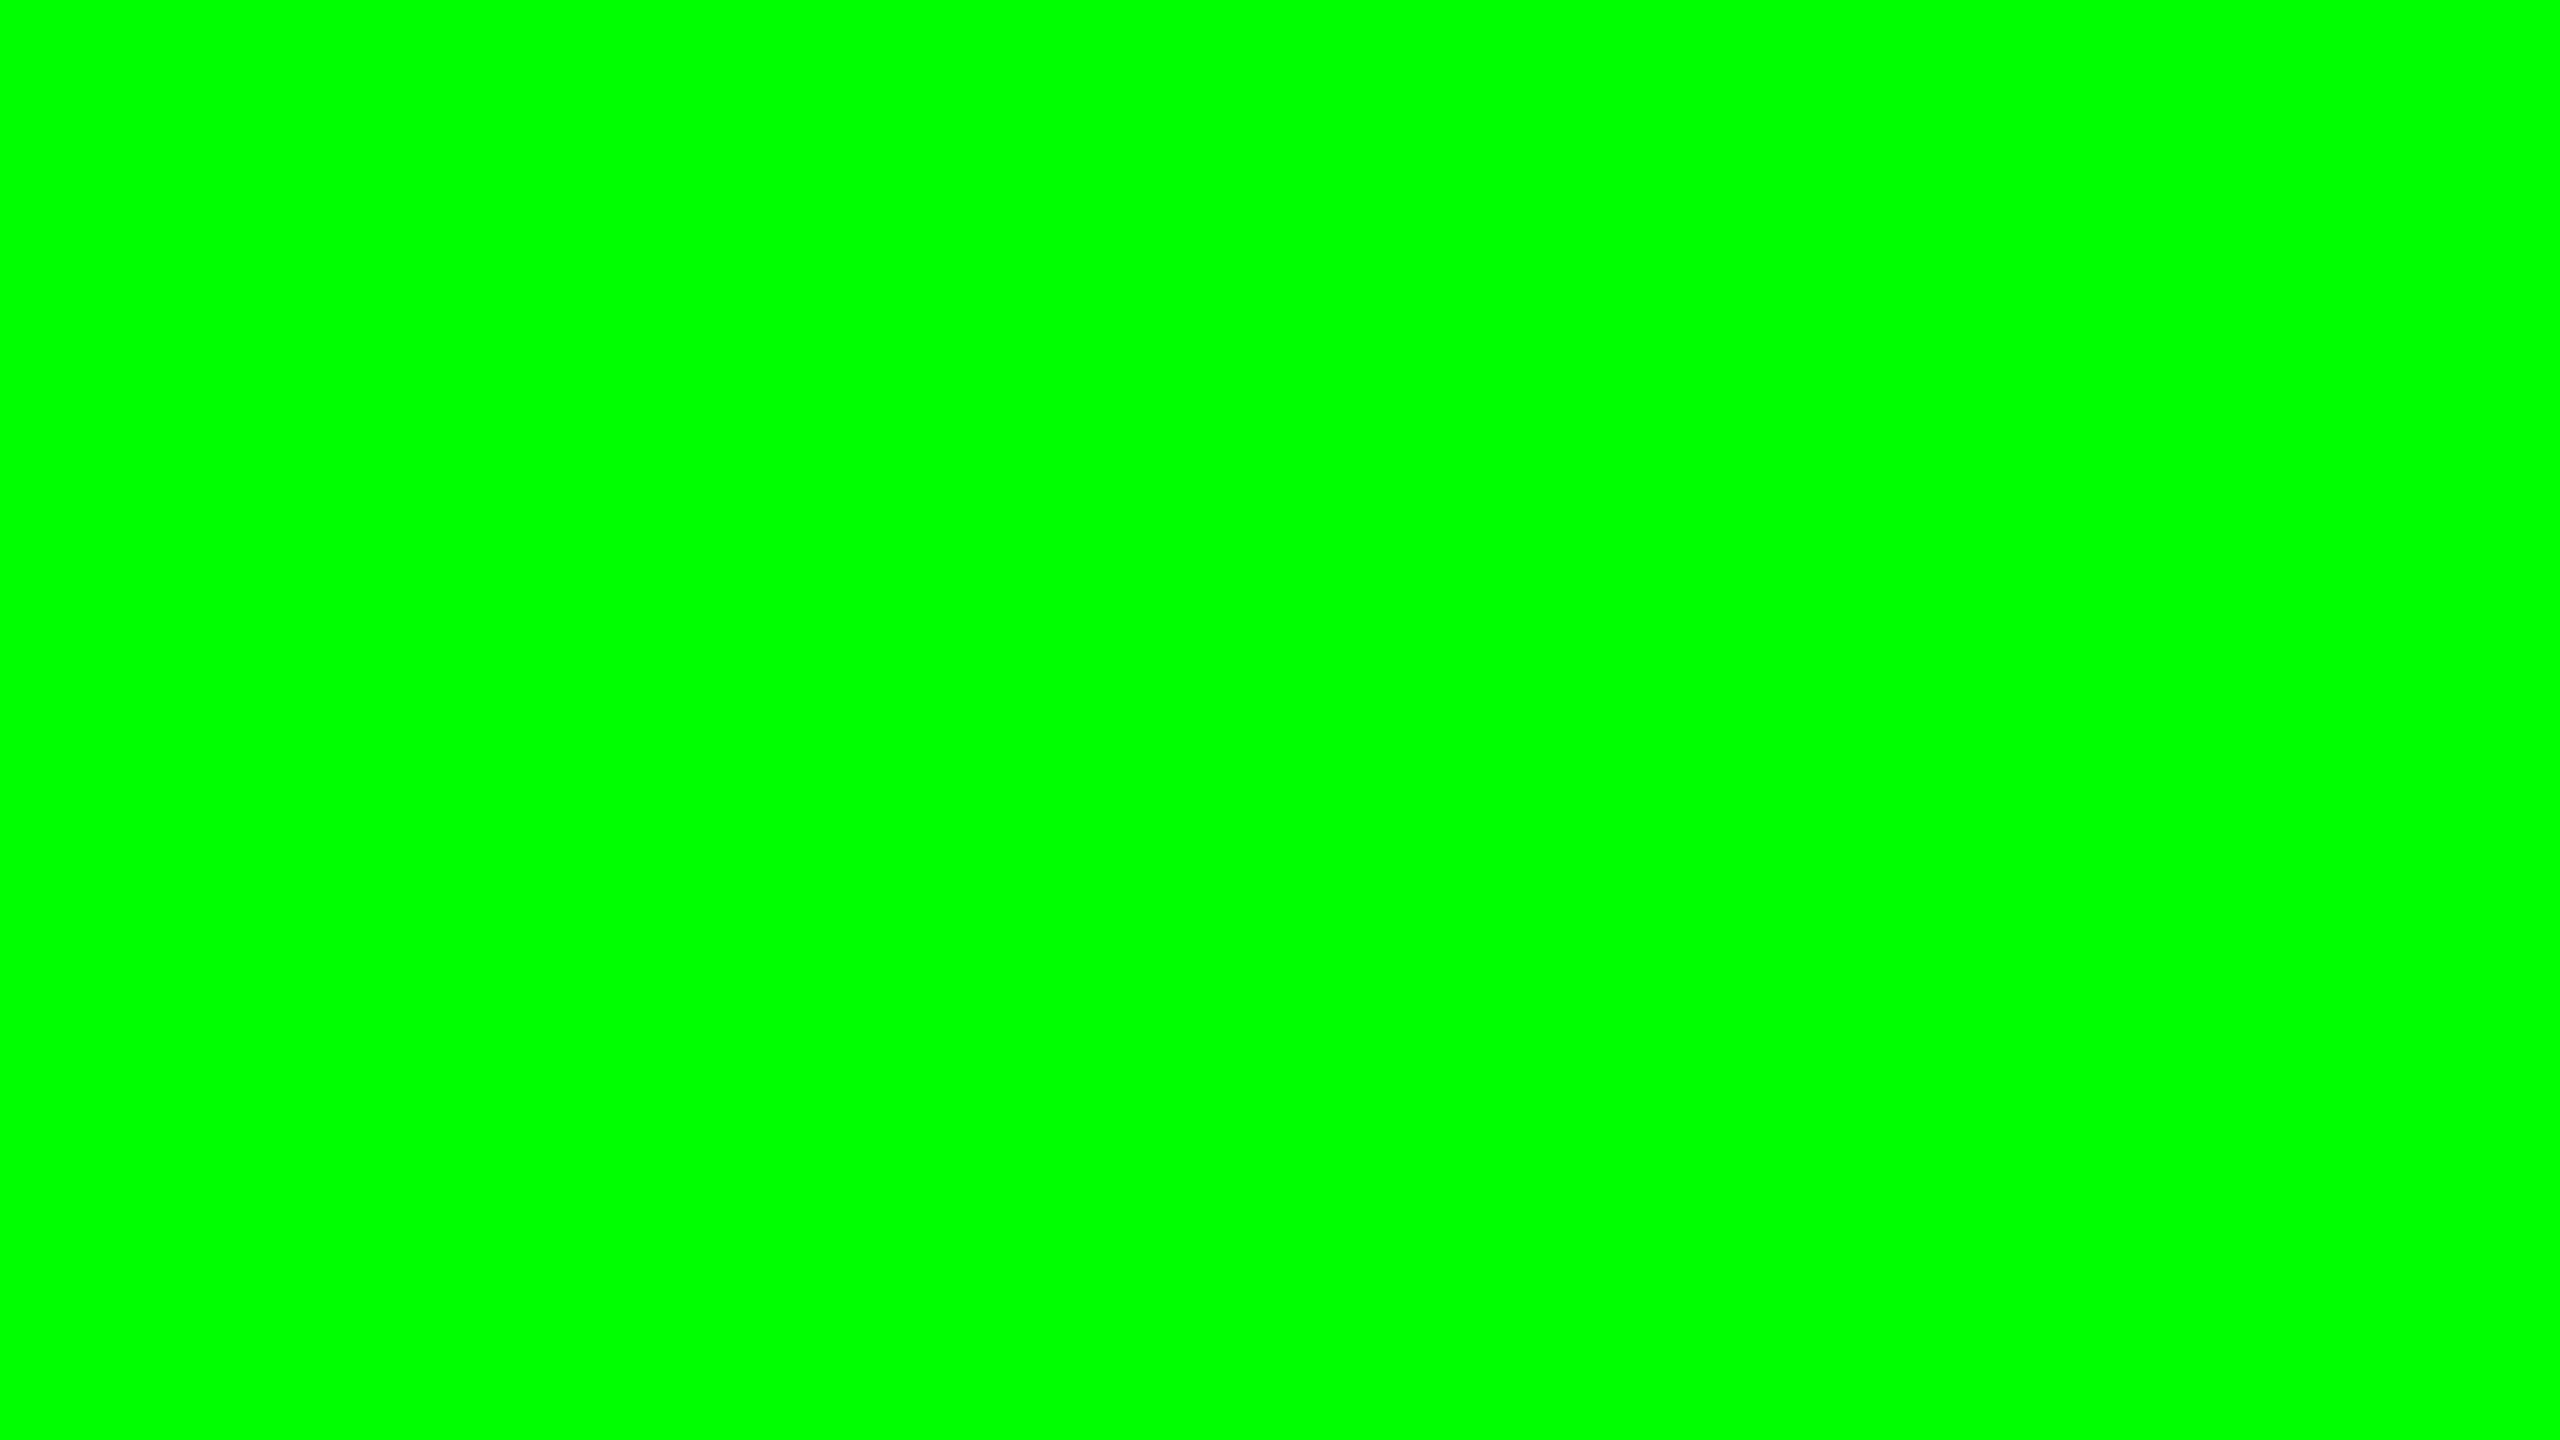 2560x1440 Lime Web Green Solid Color Background